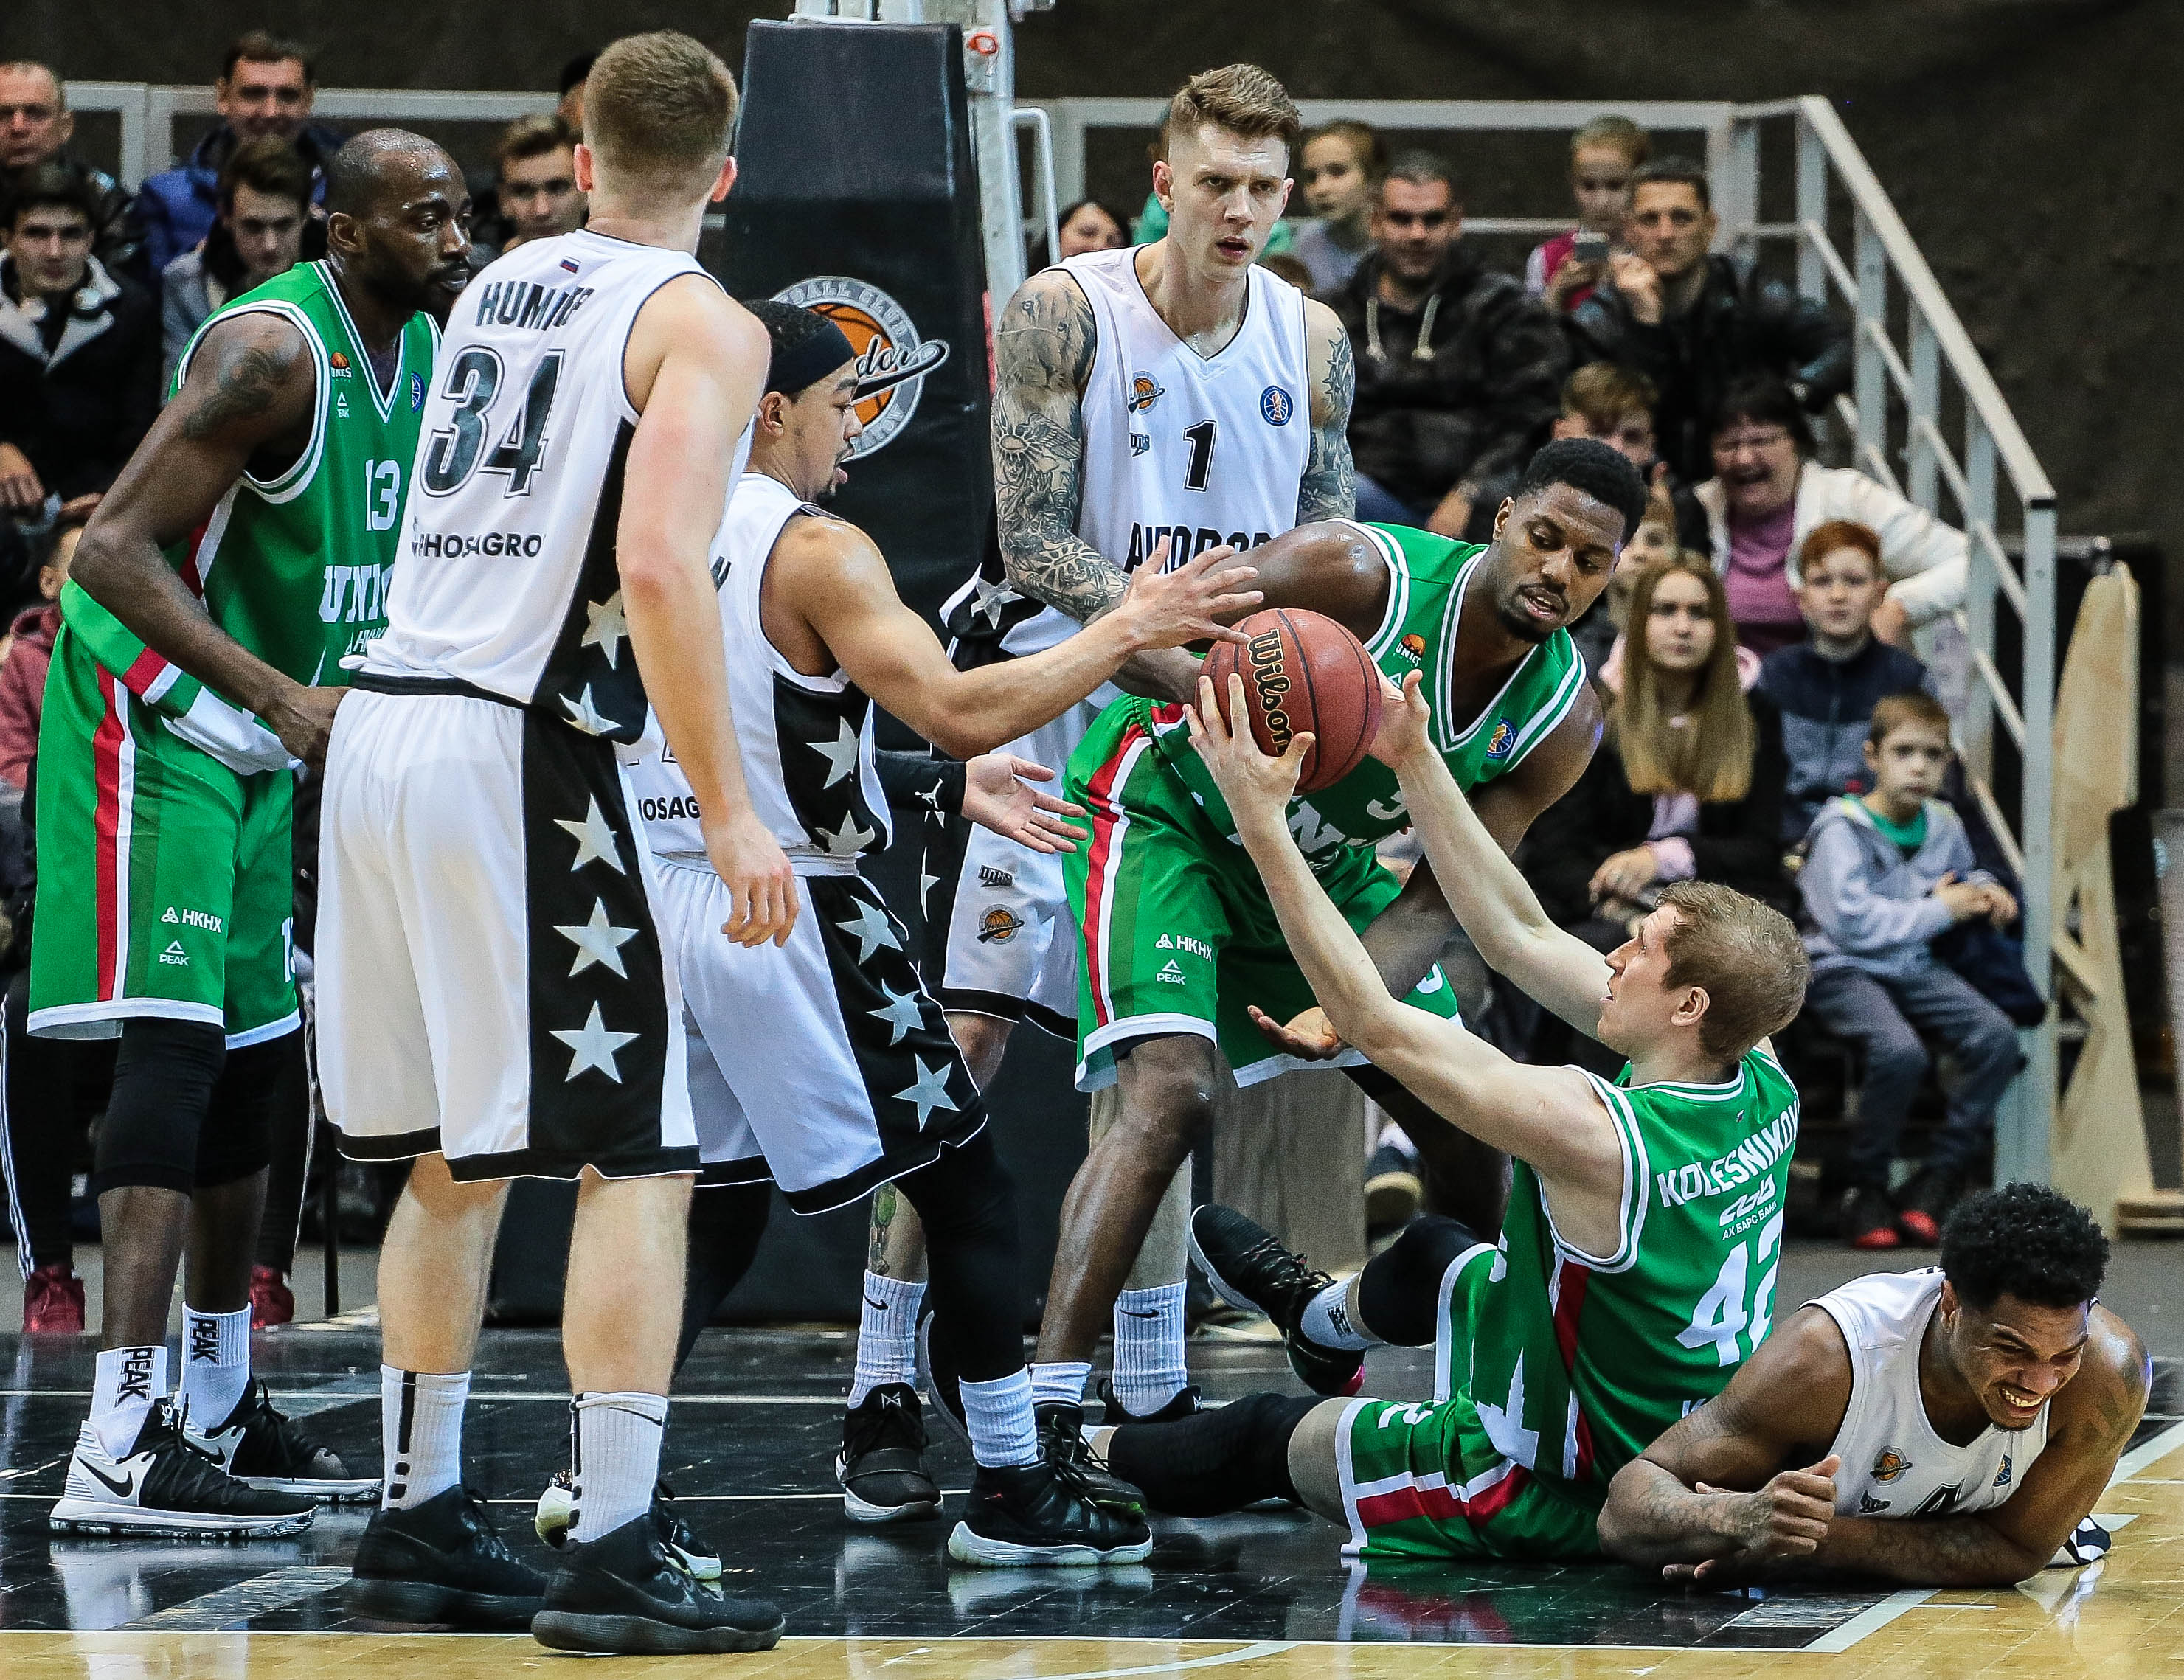 UNICS Erases 15-Point Deficit, Defeats Avtodor